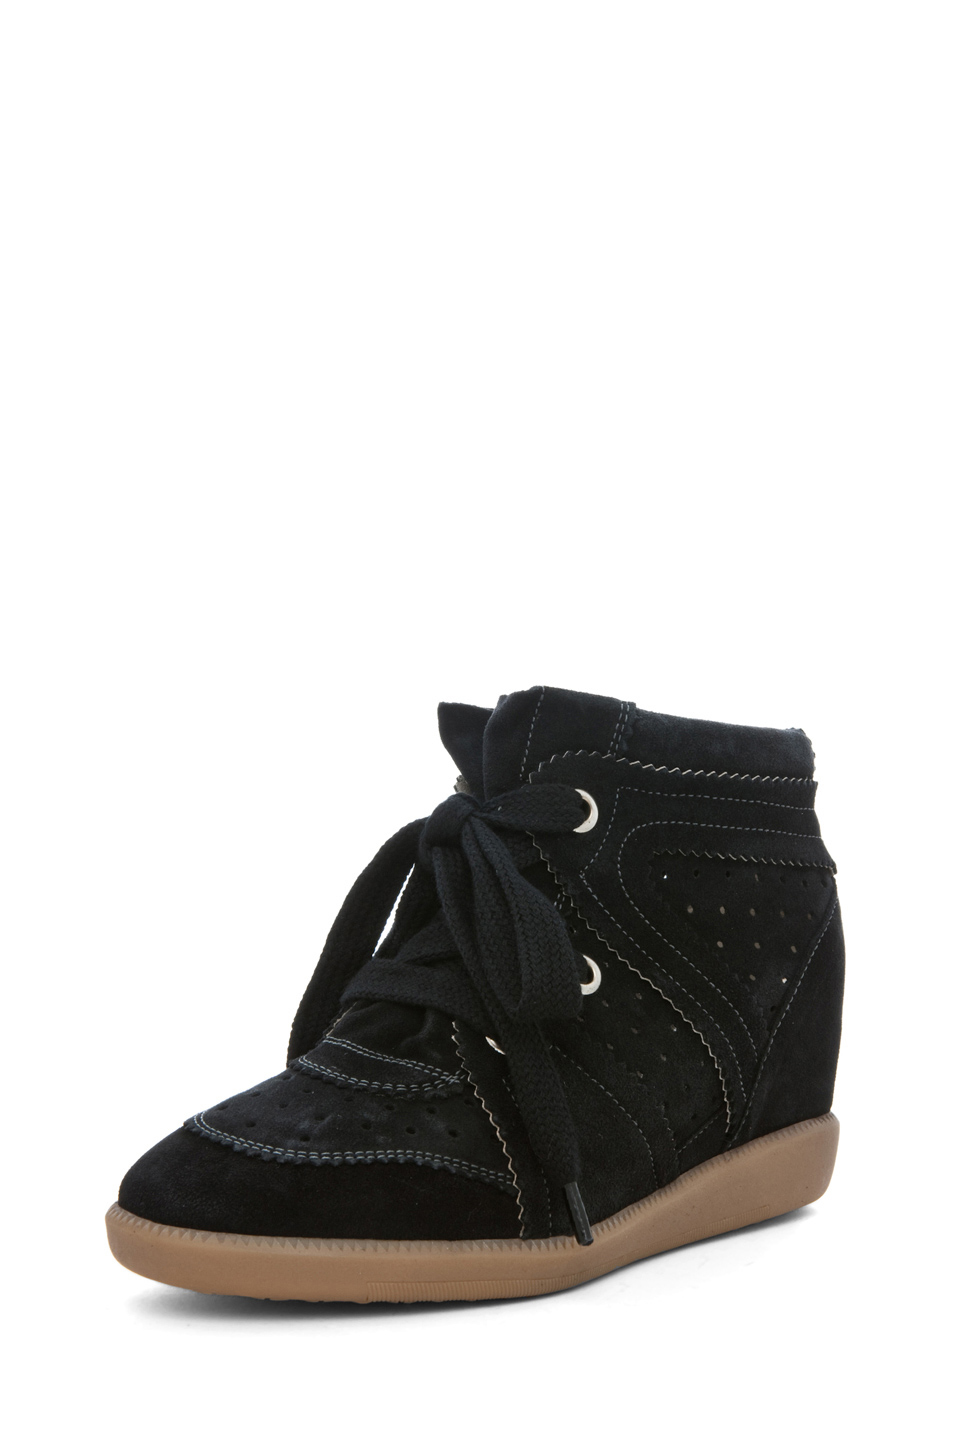 Isabel Marant|Bobby Calfkin Velvet Leather Sneakers in Anthracite